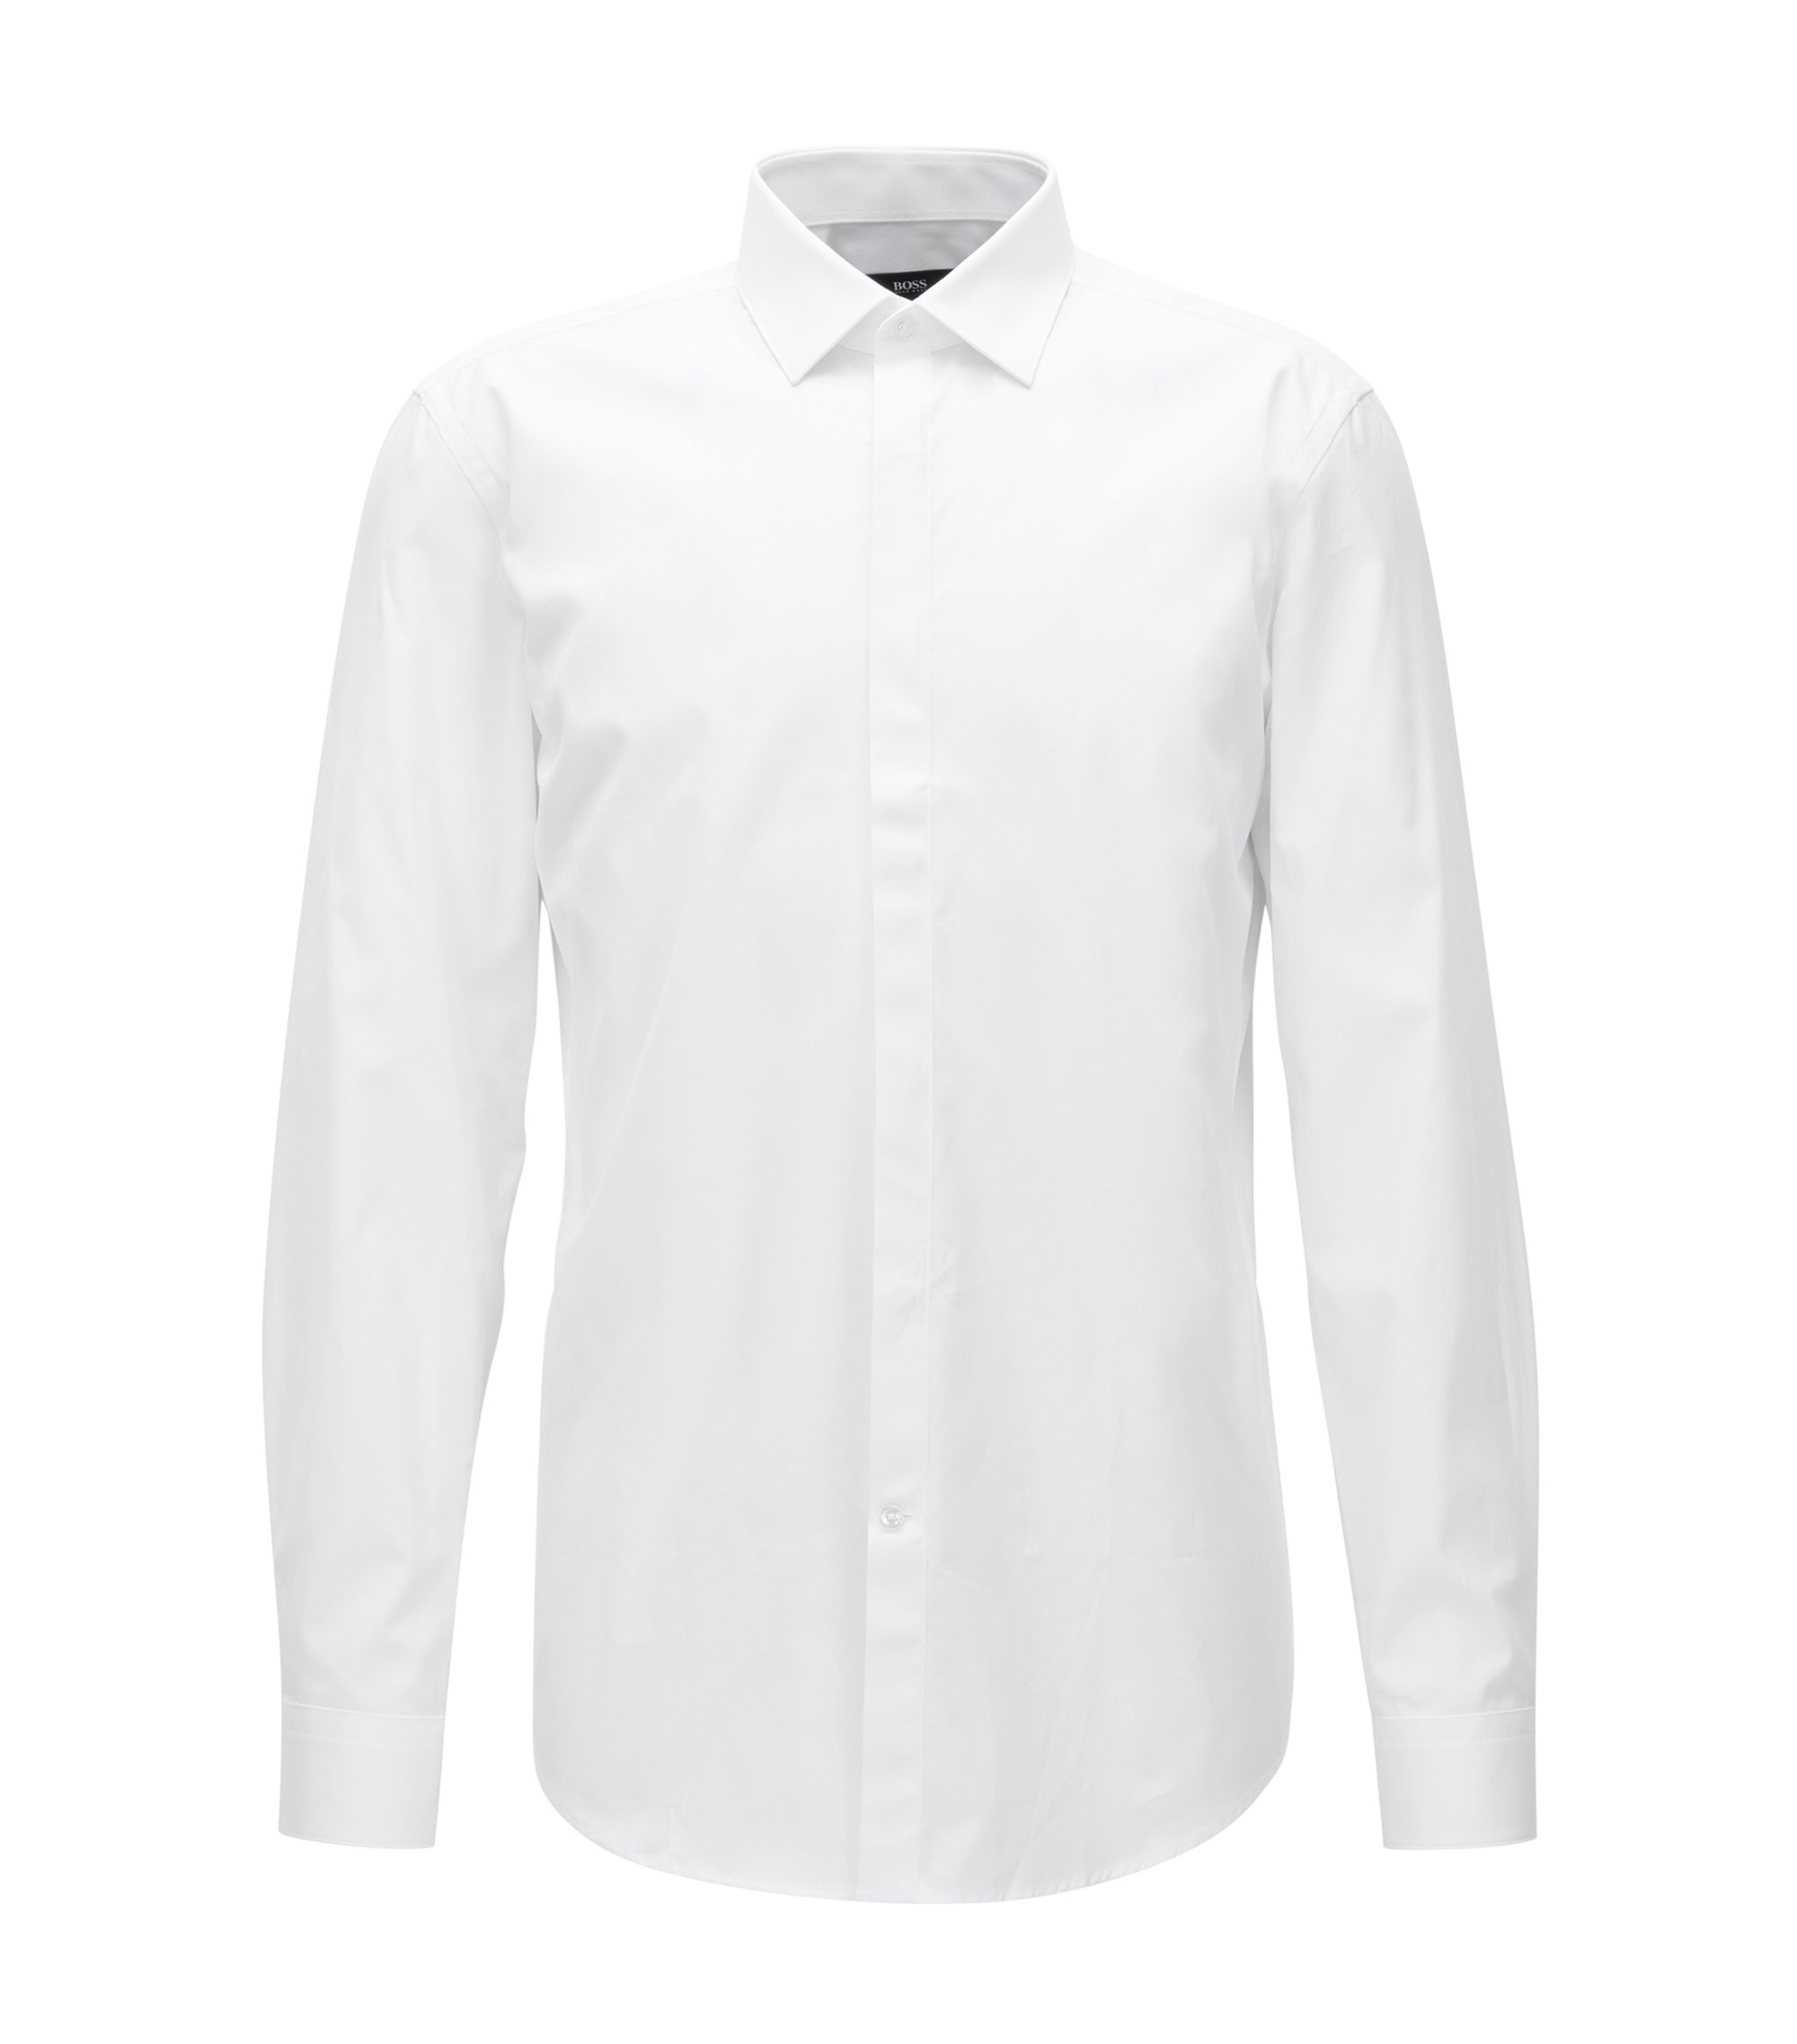 Slim-fit shirt in cotton poplin, White